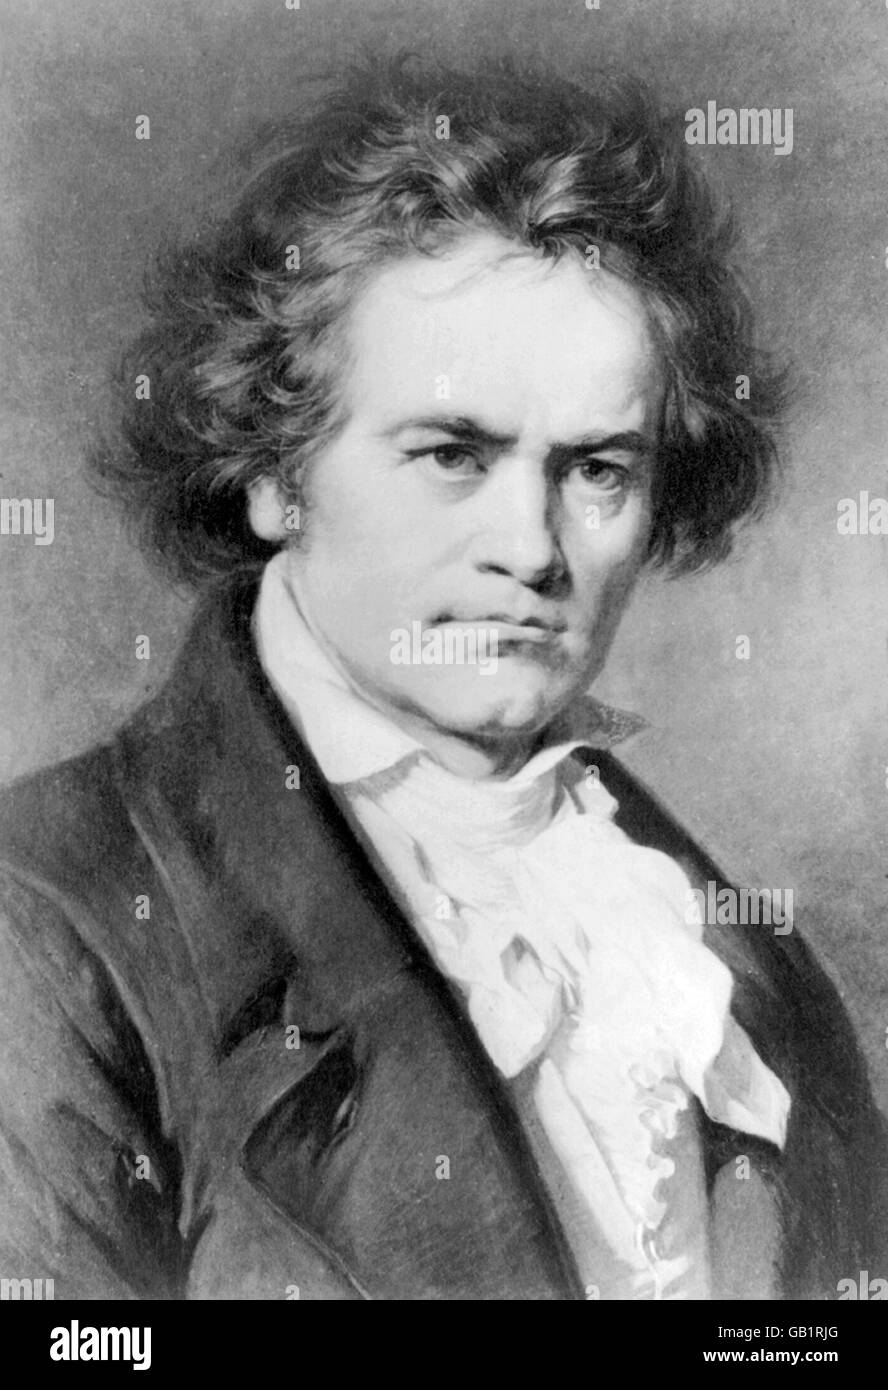 The German composer, Ludwig van Beethoven (1770-1827). From a painting by Carl Jaeger. - Stock Image